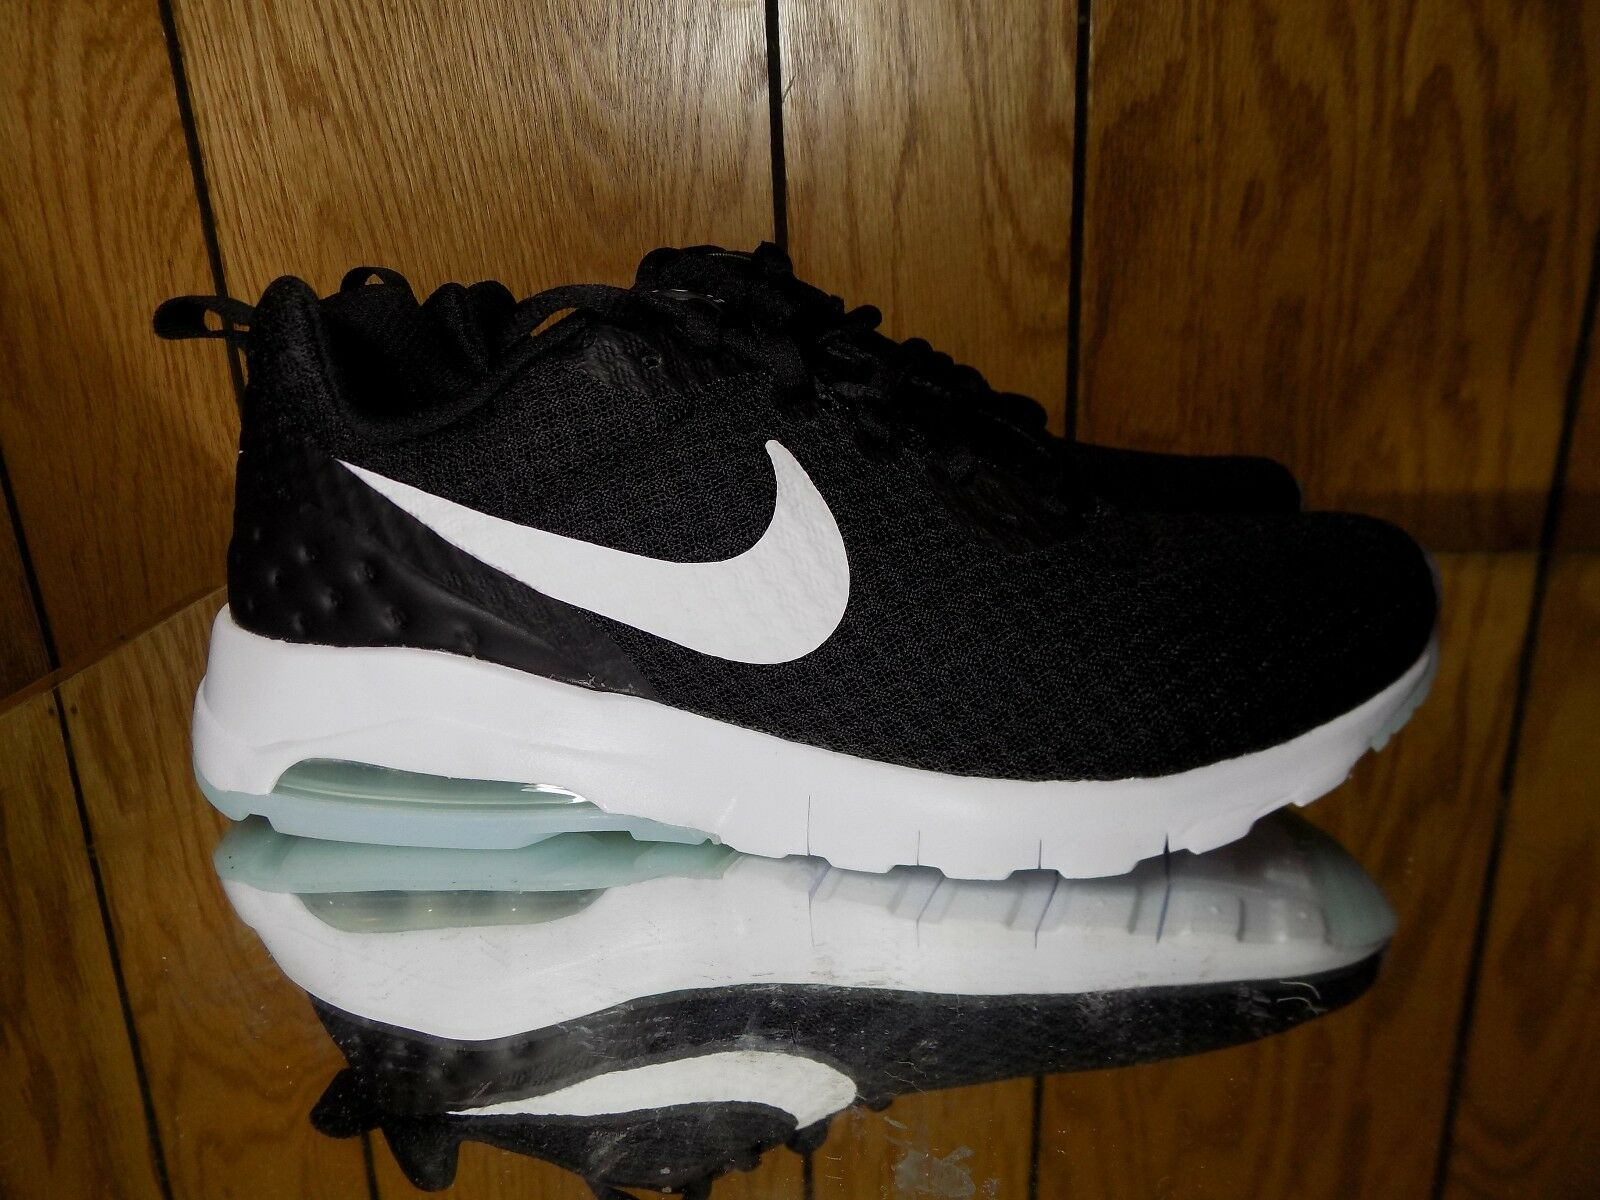 New WMNS NIKE AIR MAX MOTION LW (833662-011) Running Shoes Casual s. 6.5